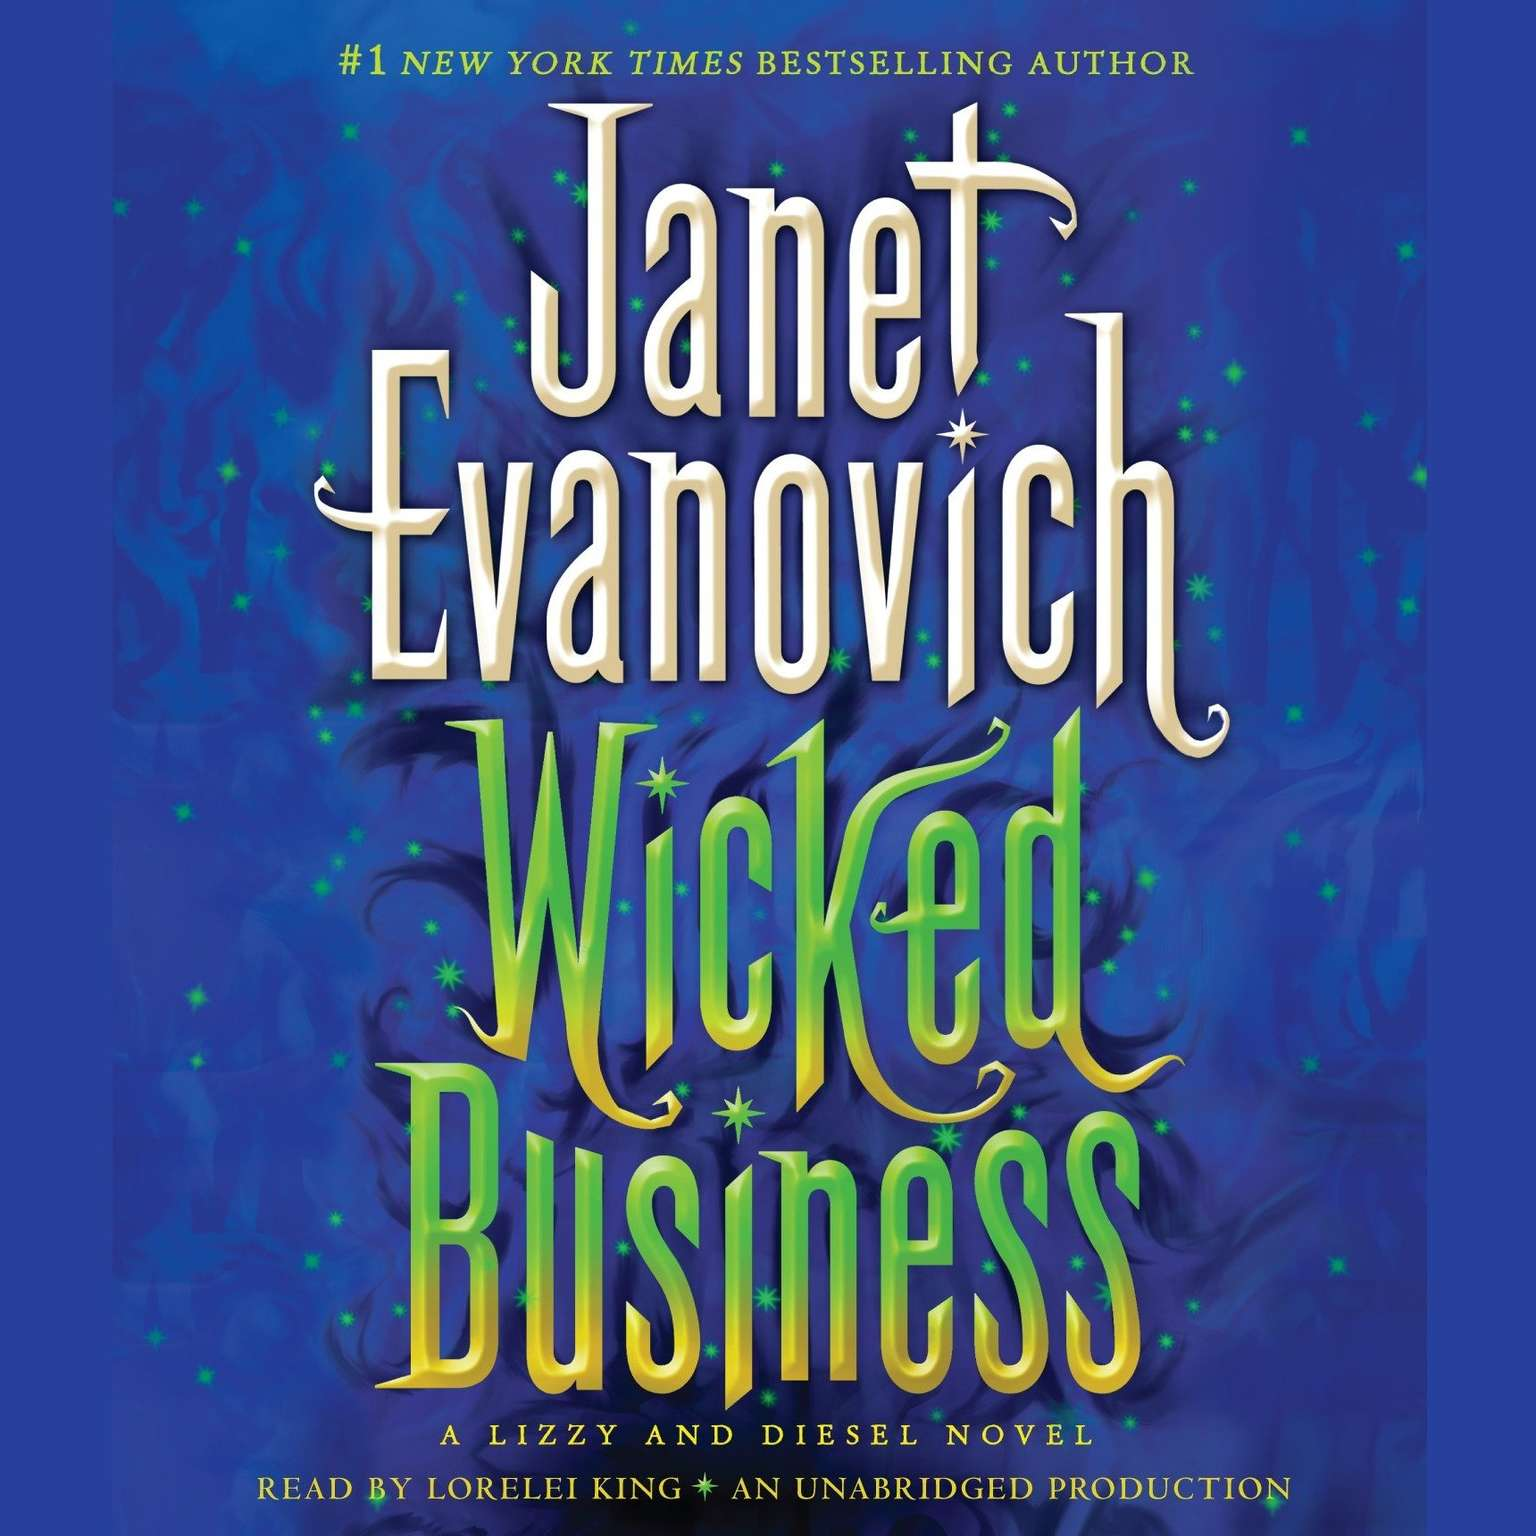 Printable Wicked Business: A Lizzy and Diesel Novel Audiobook Cover Art